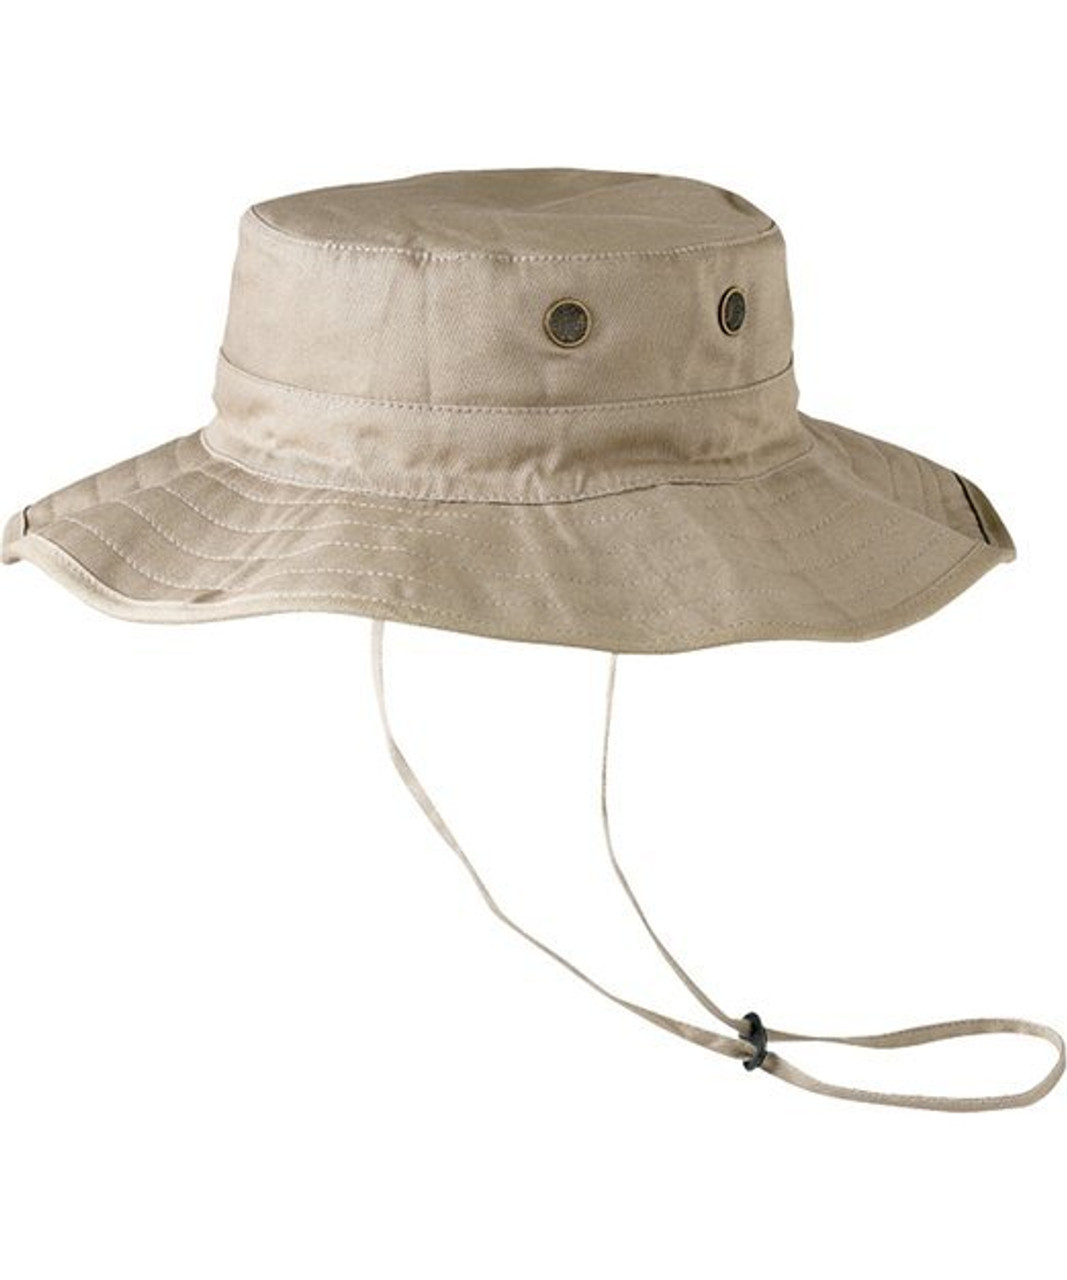 Canadian Armed Forces Cadet Boonie Cap